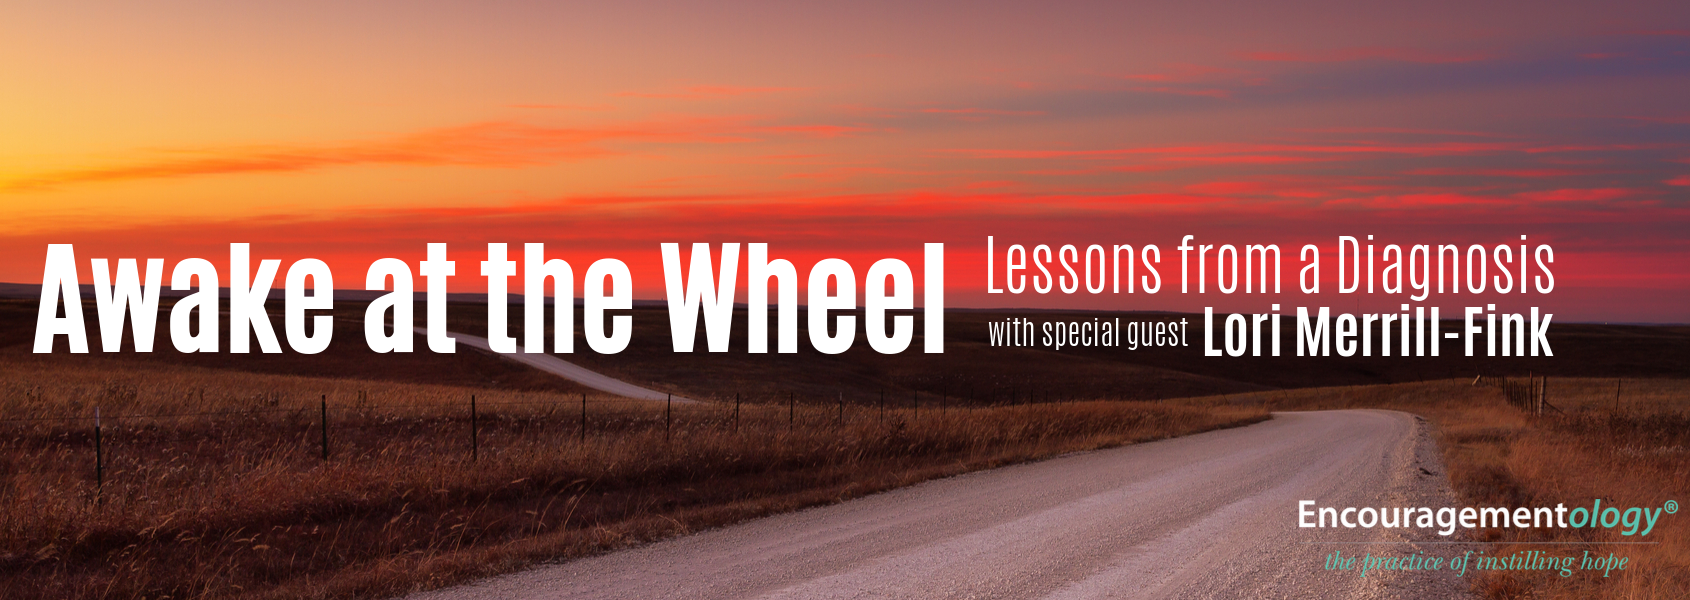 Awake at the Wheel, Lesson from a Diagnosis